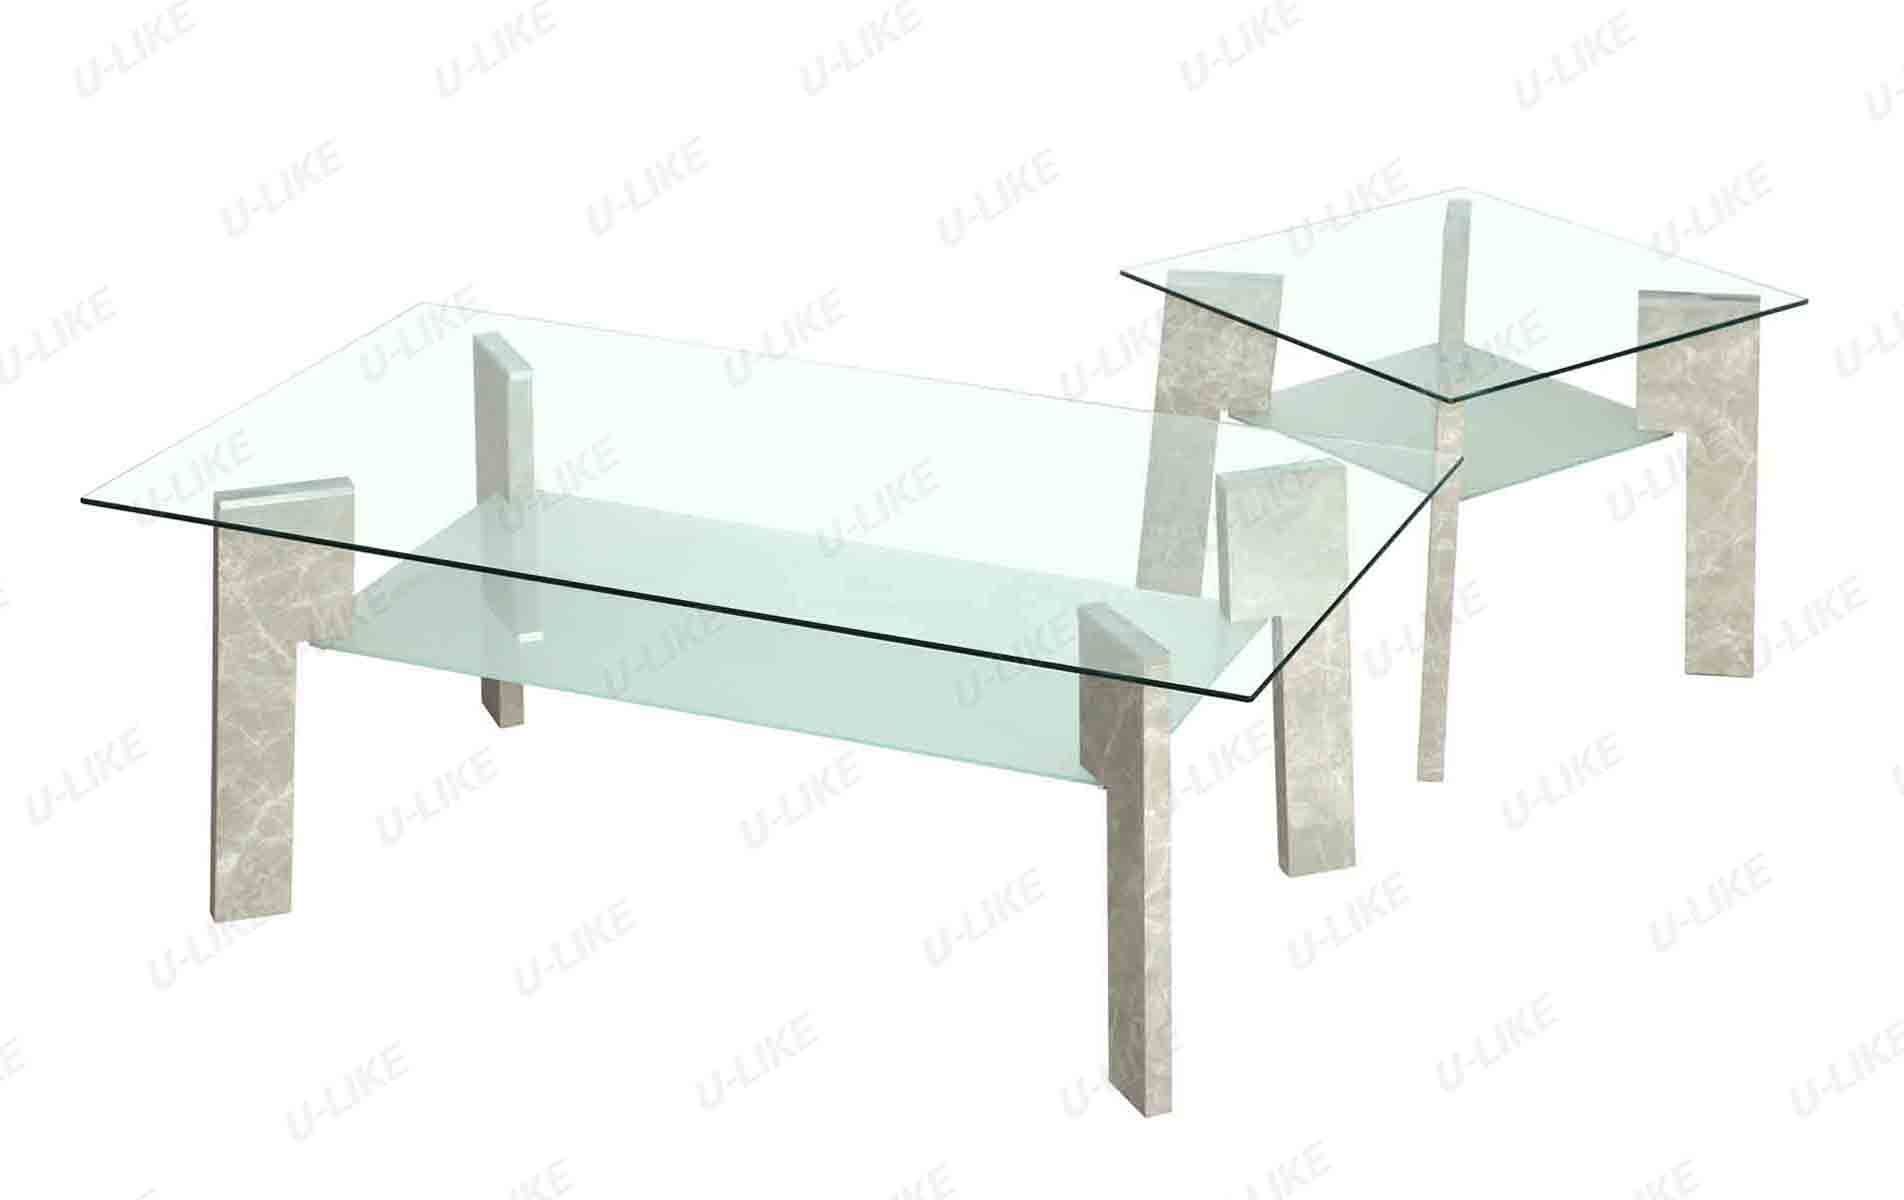 Classic Tempered Glass Coffee Table With Paper Veneer Legs Coffee Table Latest Furniture Designs Tempered Glass Table Top [ 1200 x 1904 Pixel ]